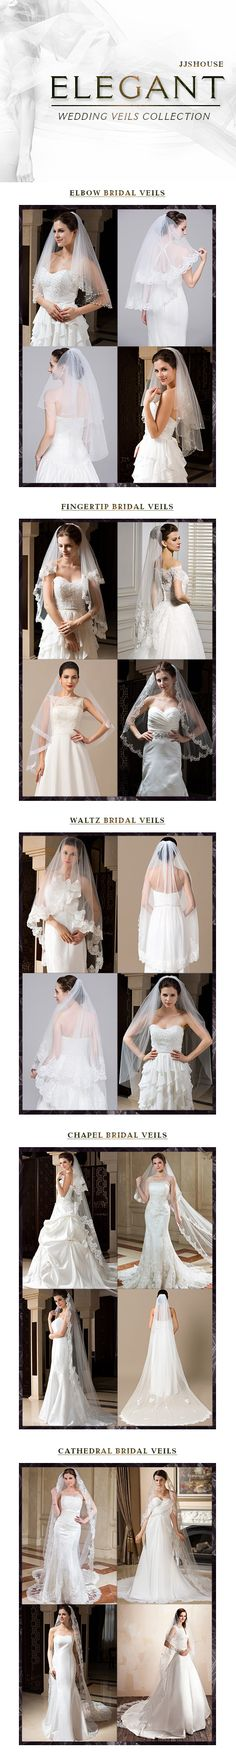 New 2016 Wedding Veils, Fingertip Bridal Veils, Elbow Bridal Veils, Cathedral Bridal Veils, Waltz Bridal Veils, Chapel Bridal Veils. See the whole collection now!